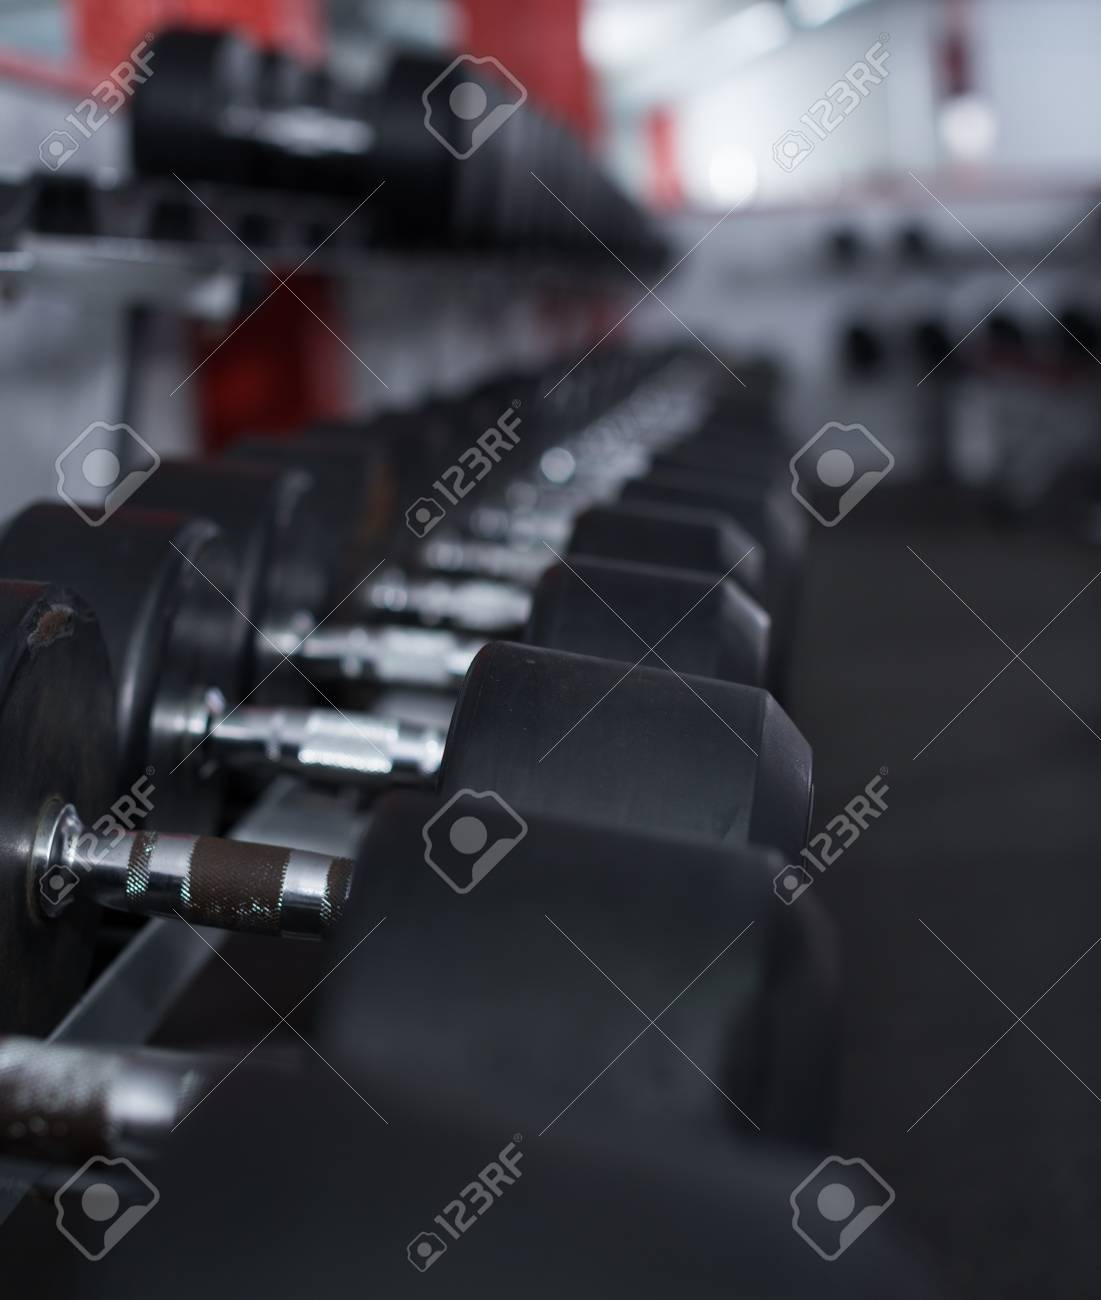 Rows of dumbbells for weight training in gym - 97100455